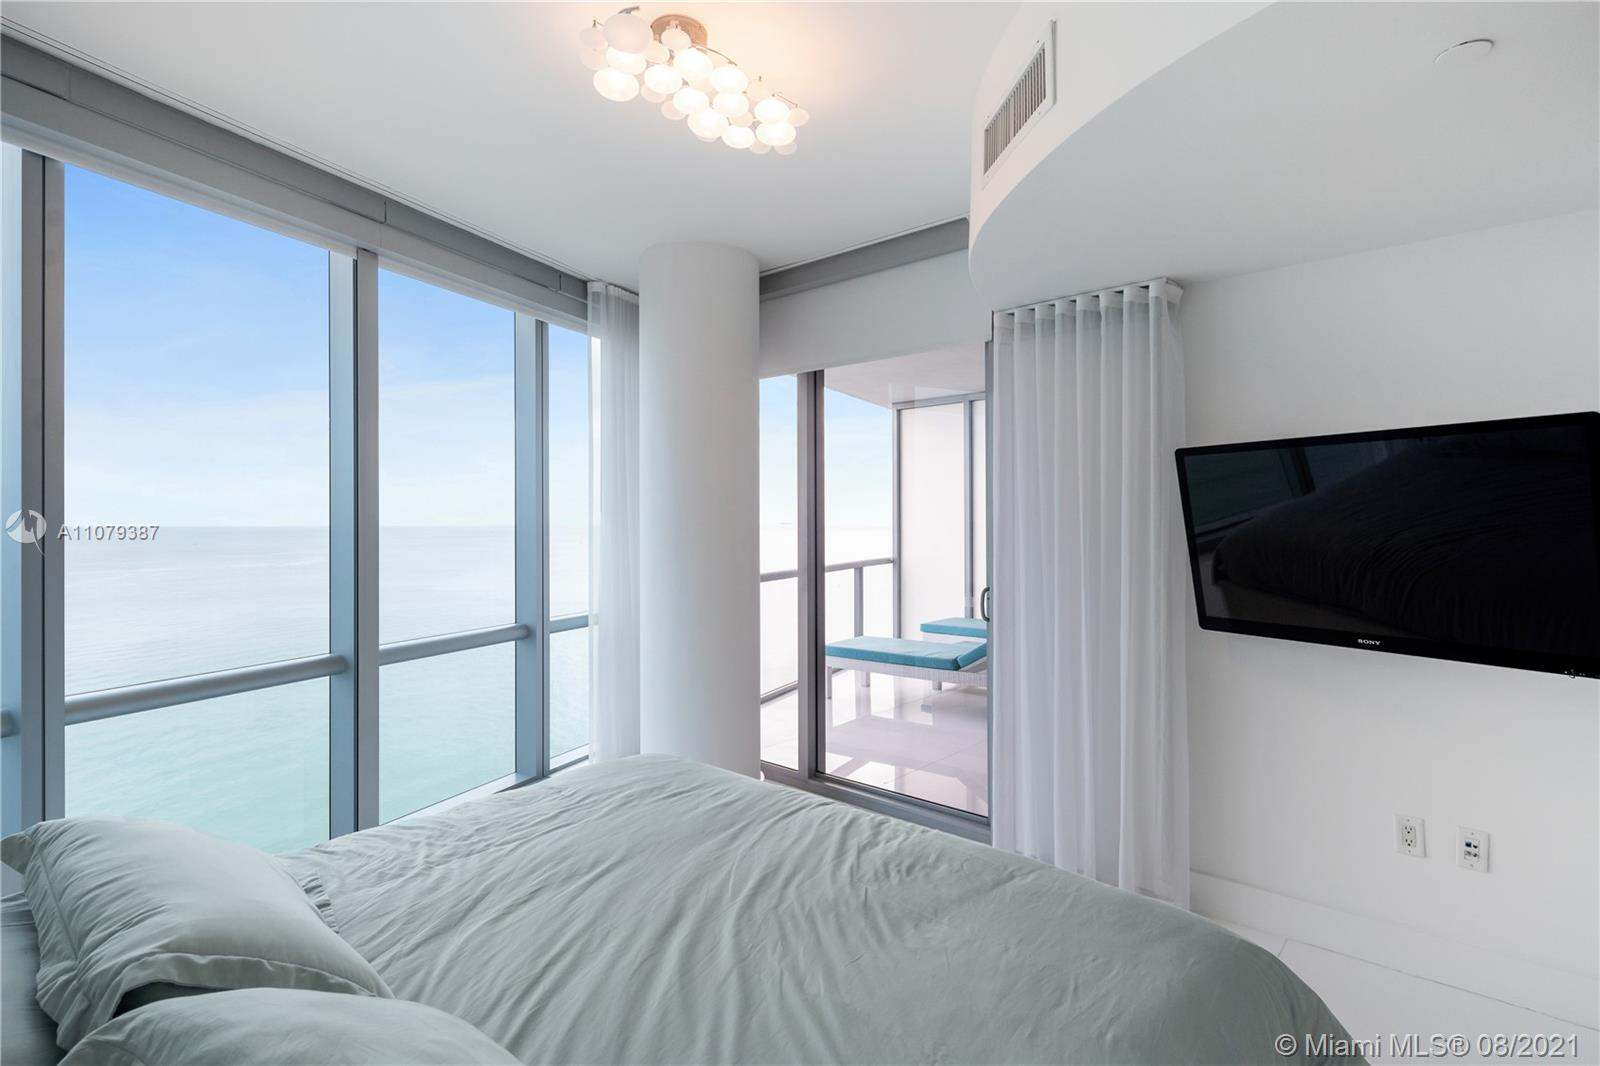 17121  Collins Ave #1703 For Sale A11079387, FL